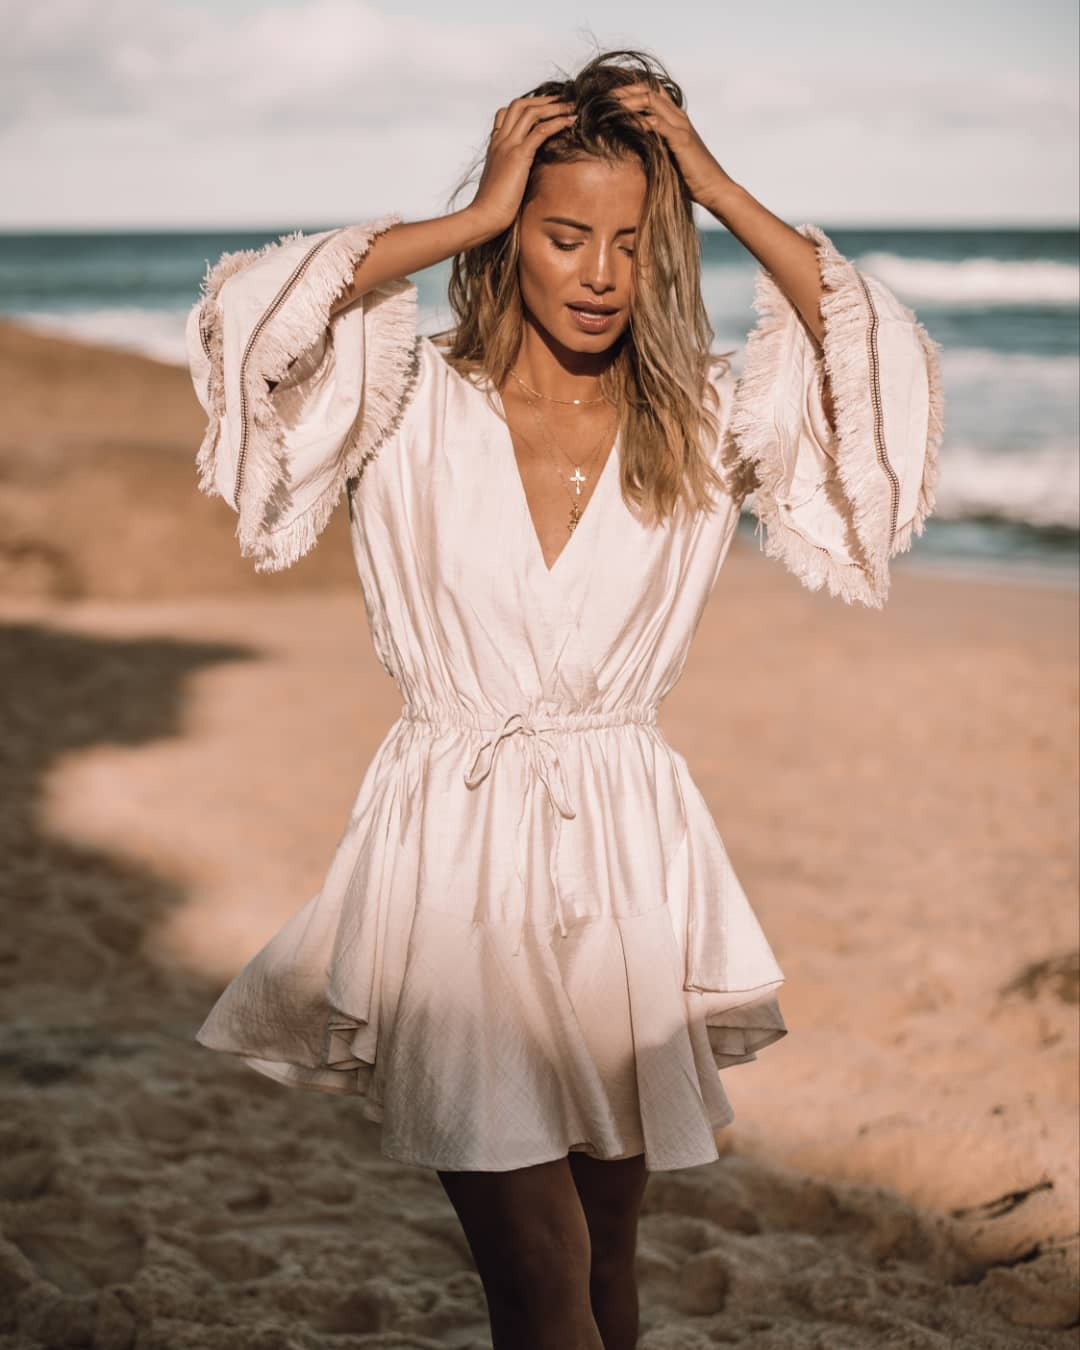 Pastel Mini Robe Dress With Wide Sleeves For Summer Beach Walks 2019